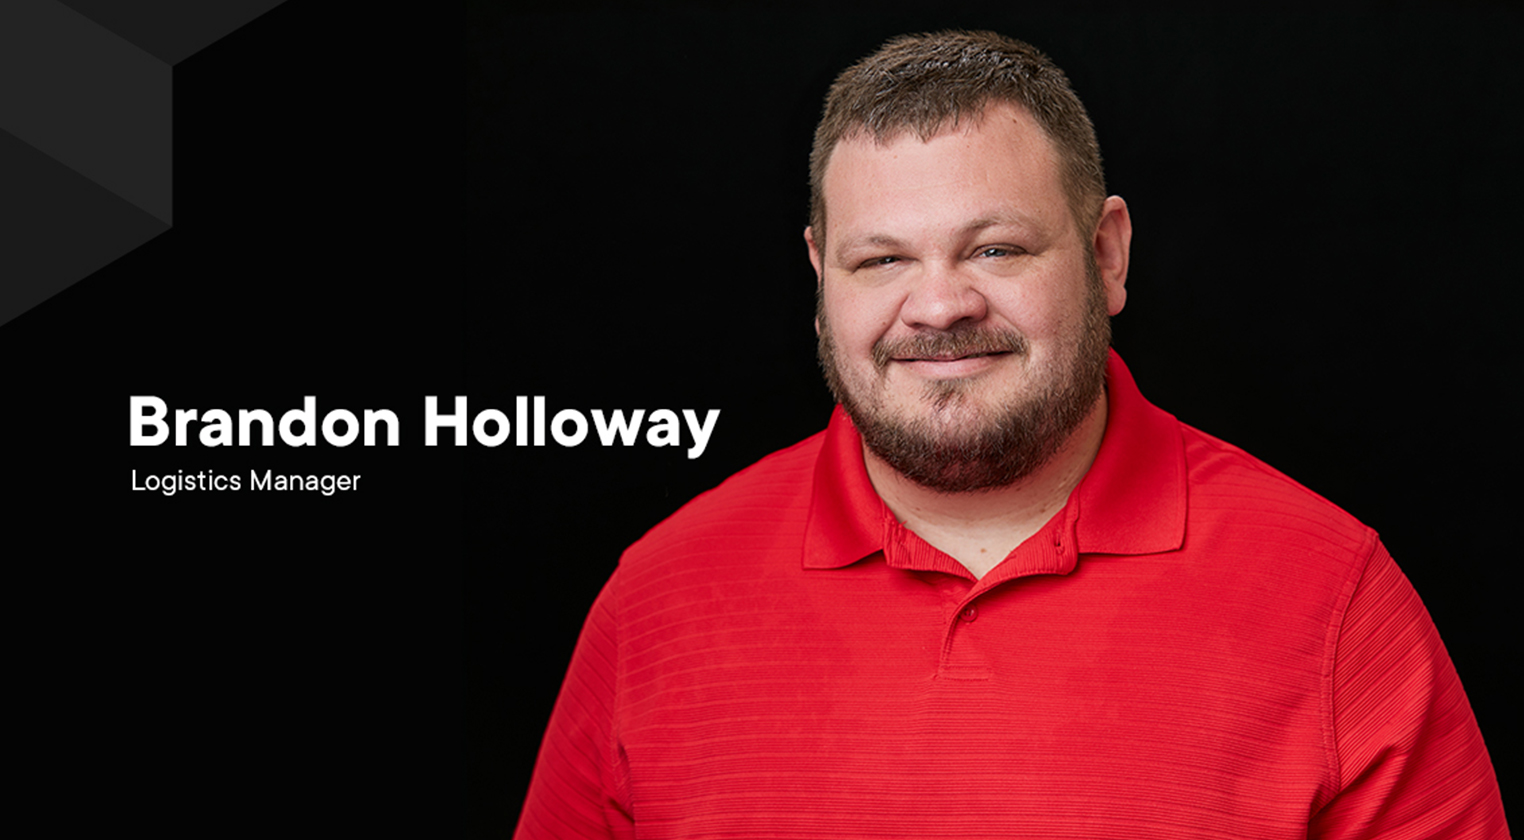 Meet Brandon Holloway